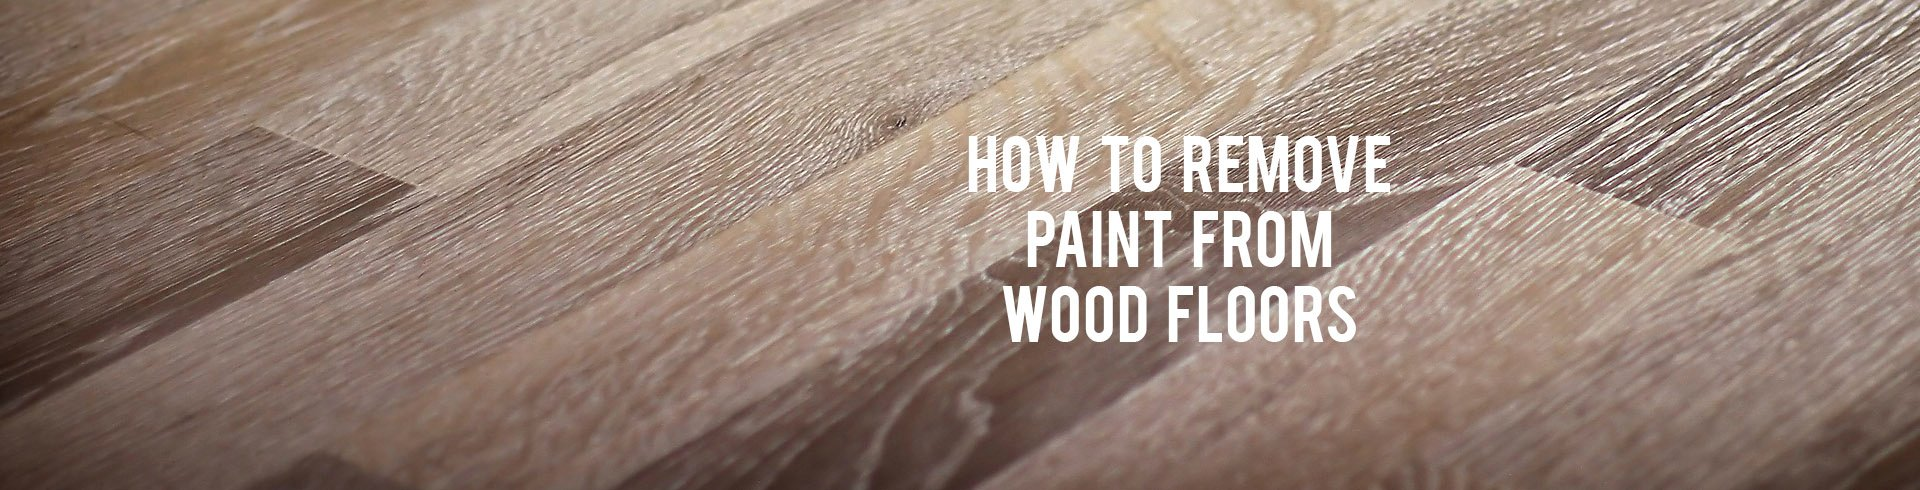 How To Remove Paint From Wood Floors Rc Willey Blog